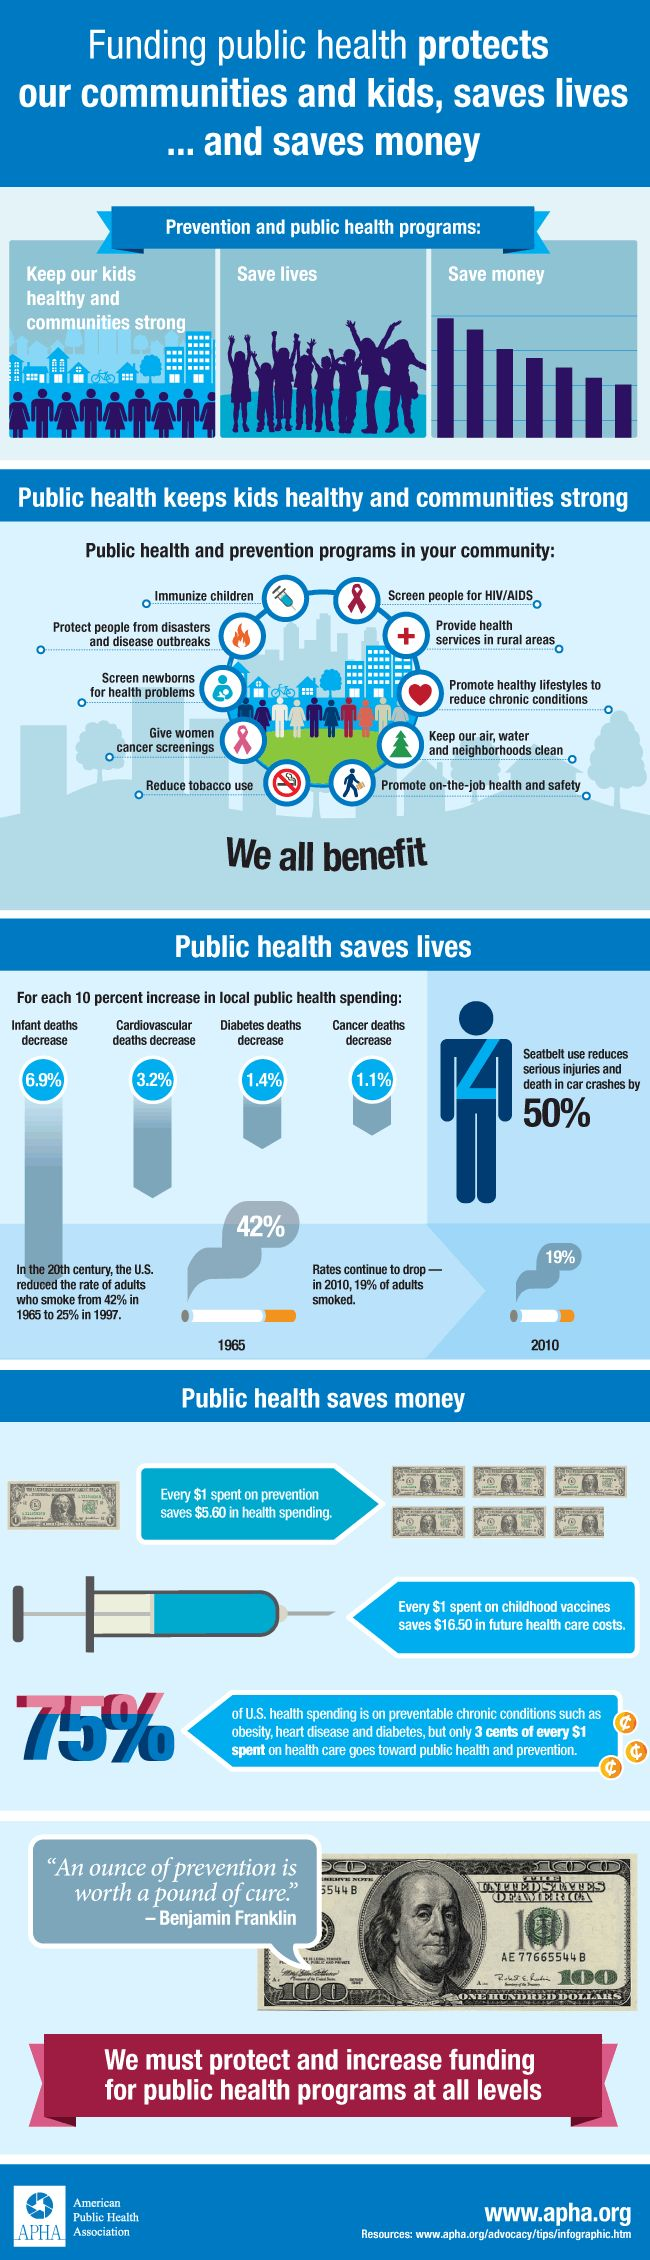 Funding public health protects our communities and kids, saves lives ... and saves money - www.healthcoverageally.com